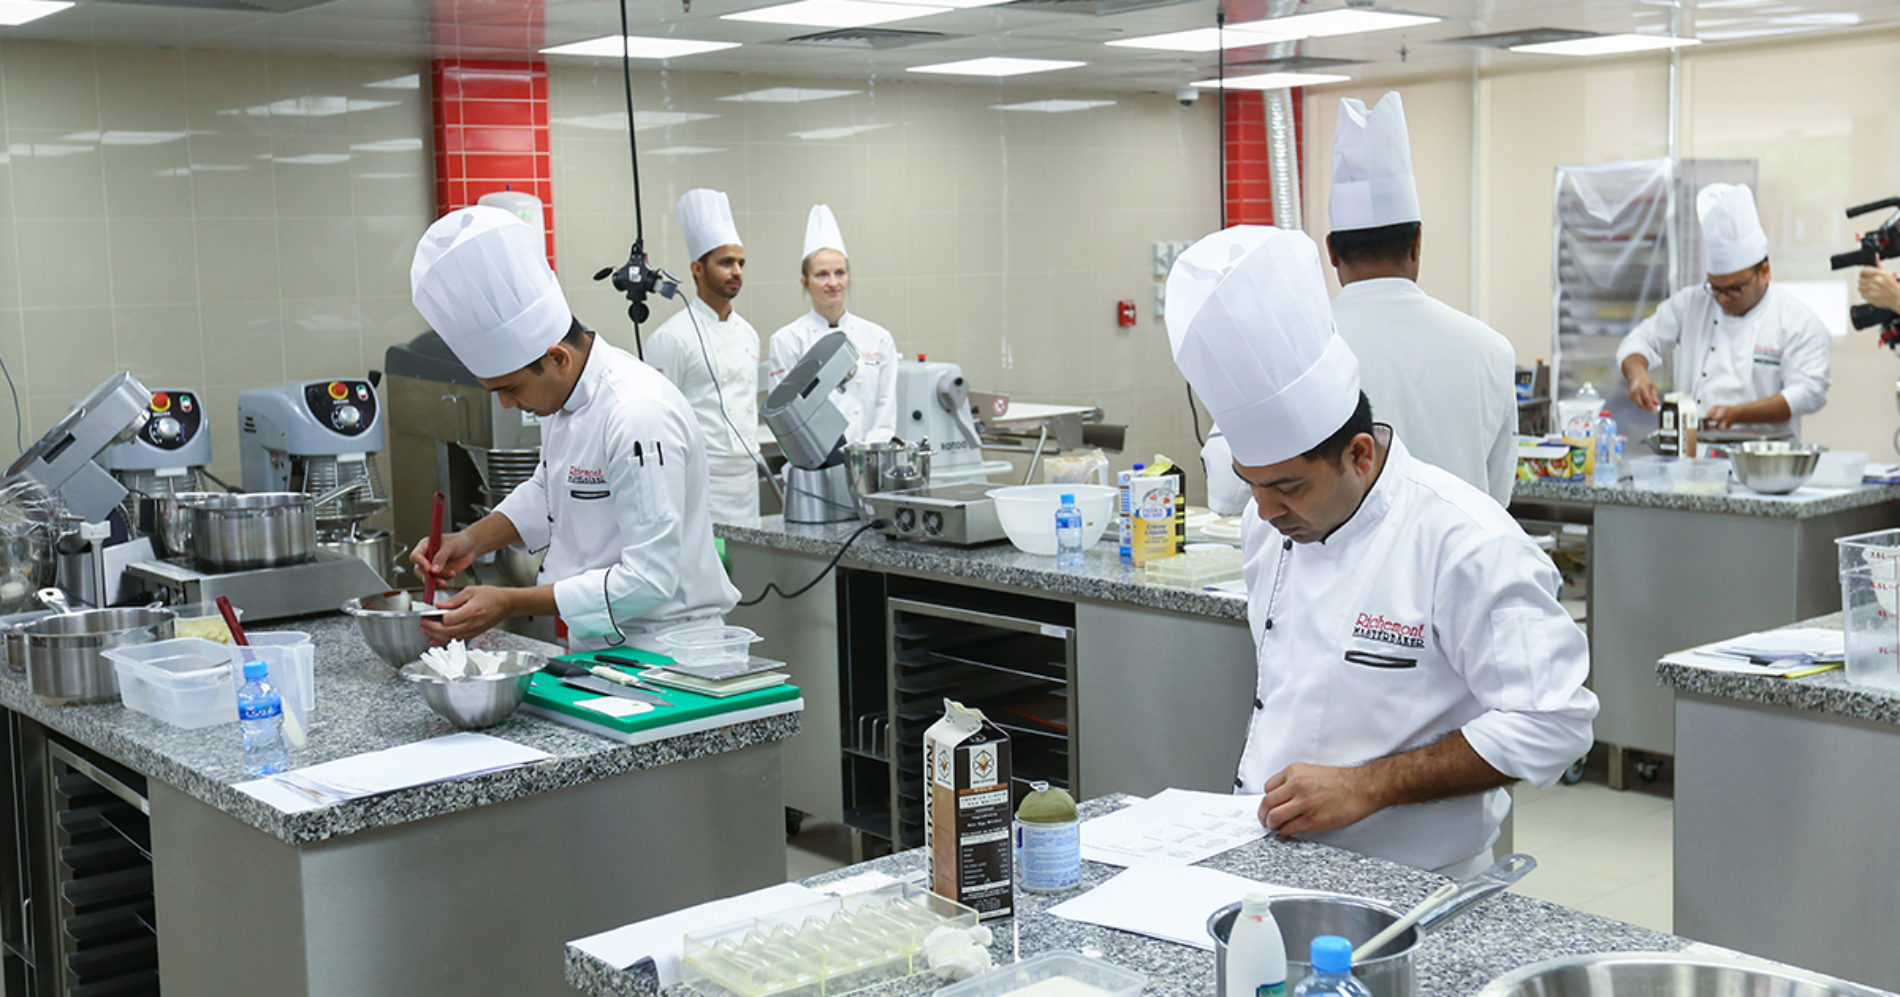 How to take your baking and pastry career to the next level